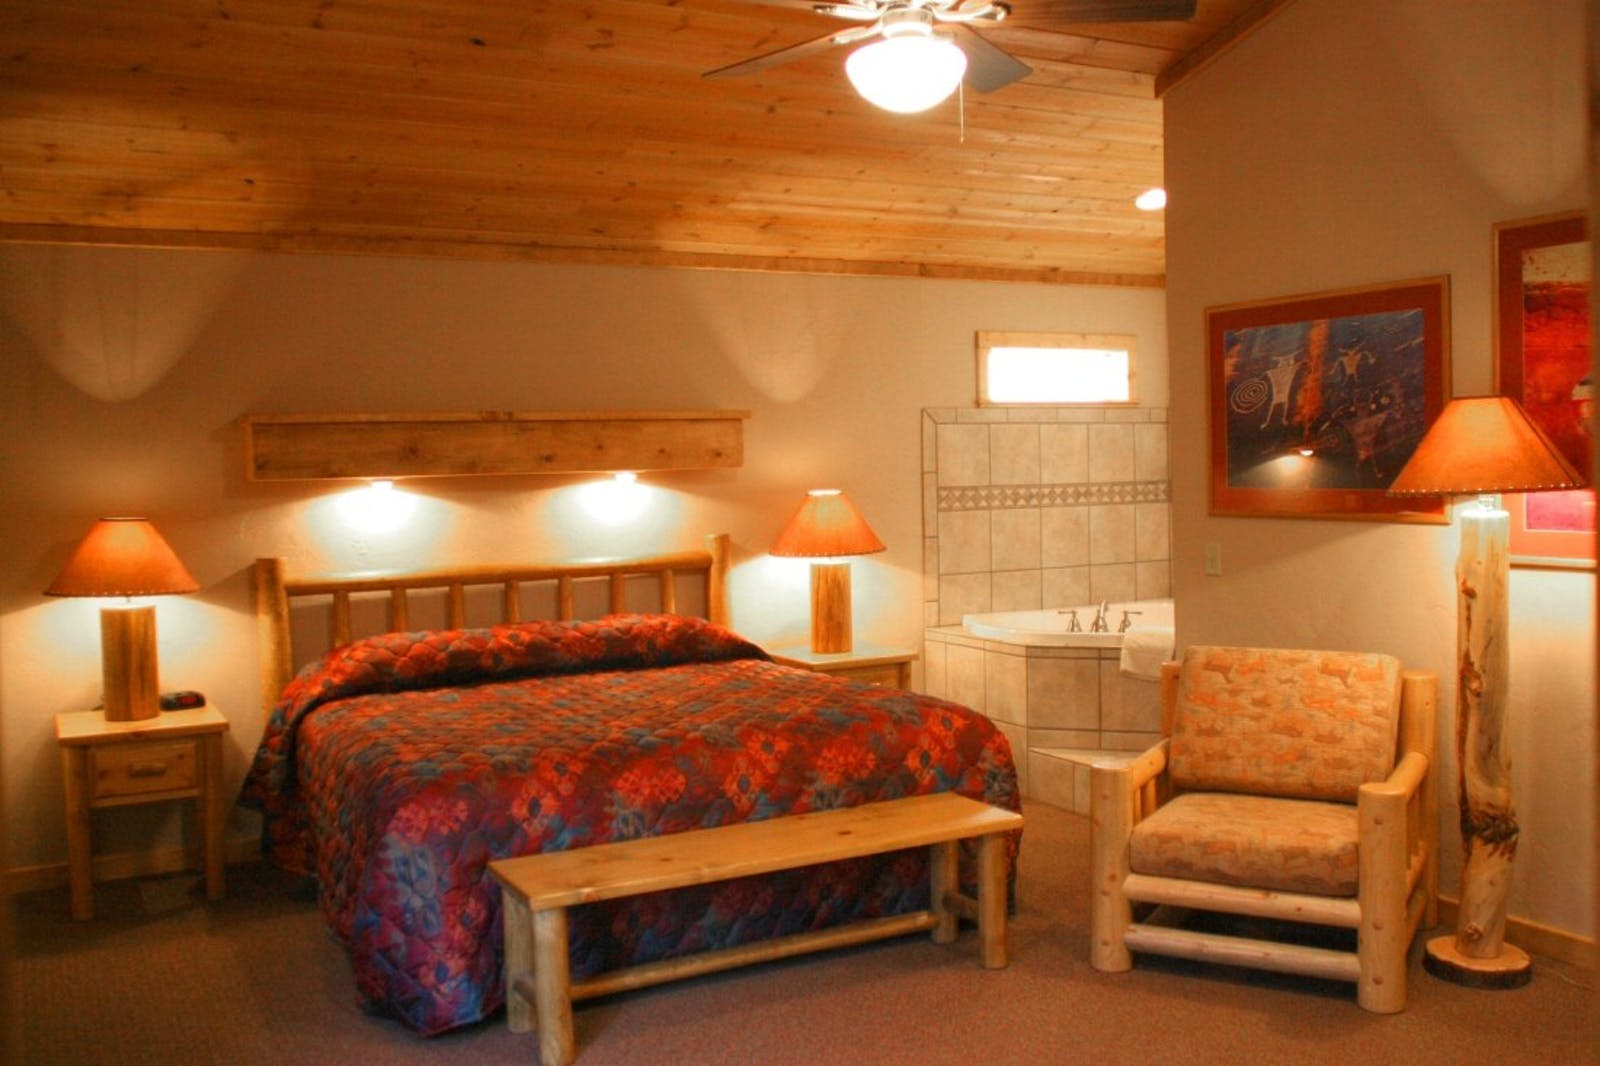 Bedroom at Red Cliffs Lodge, Utah